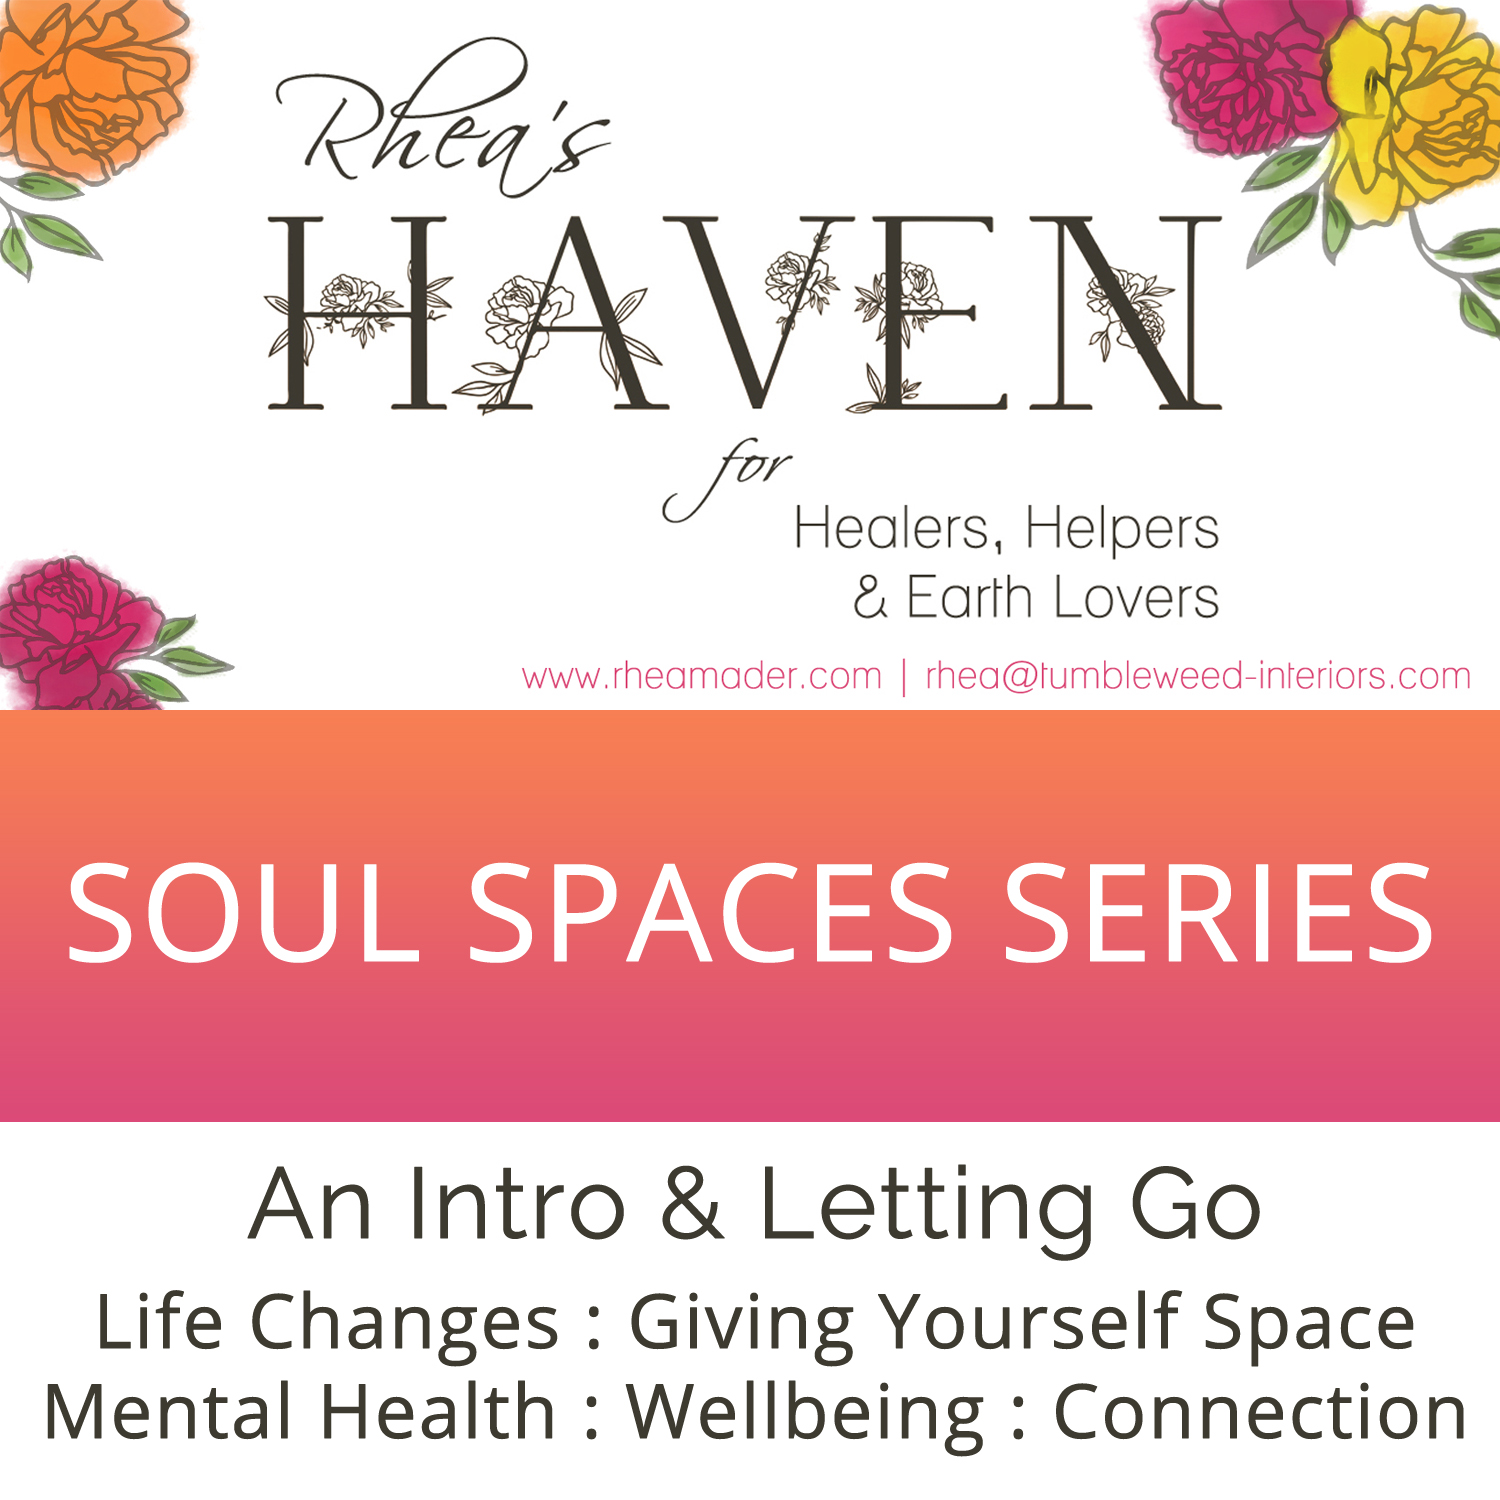 Soul Spaces Series Podcast Introduction Letting Go and Mental Health